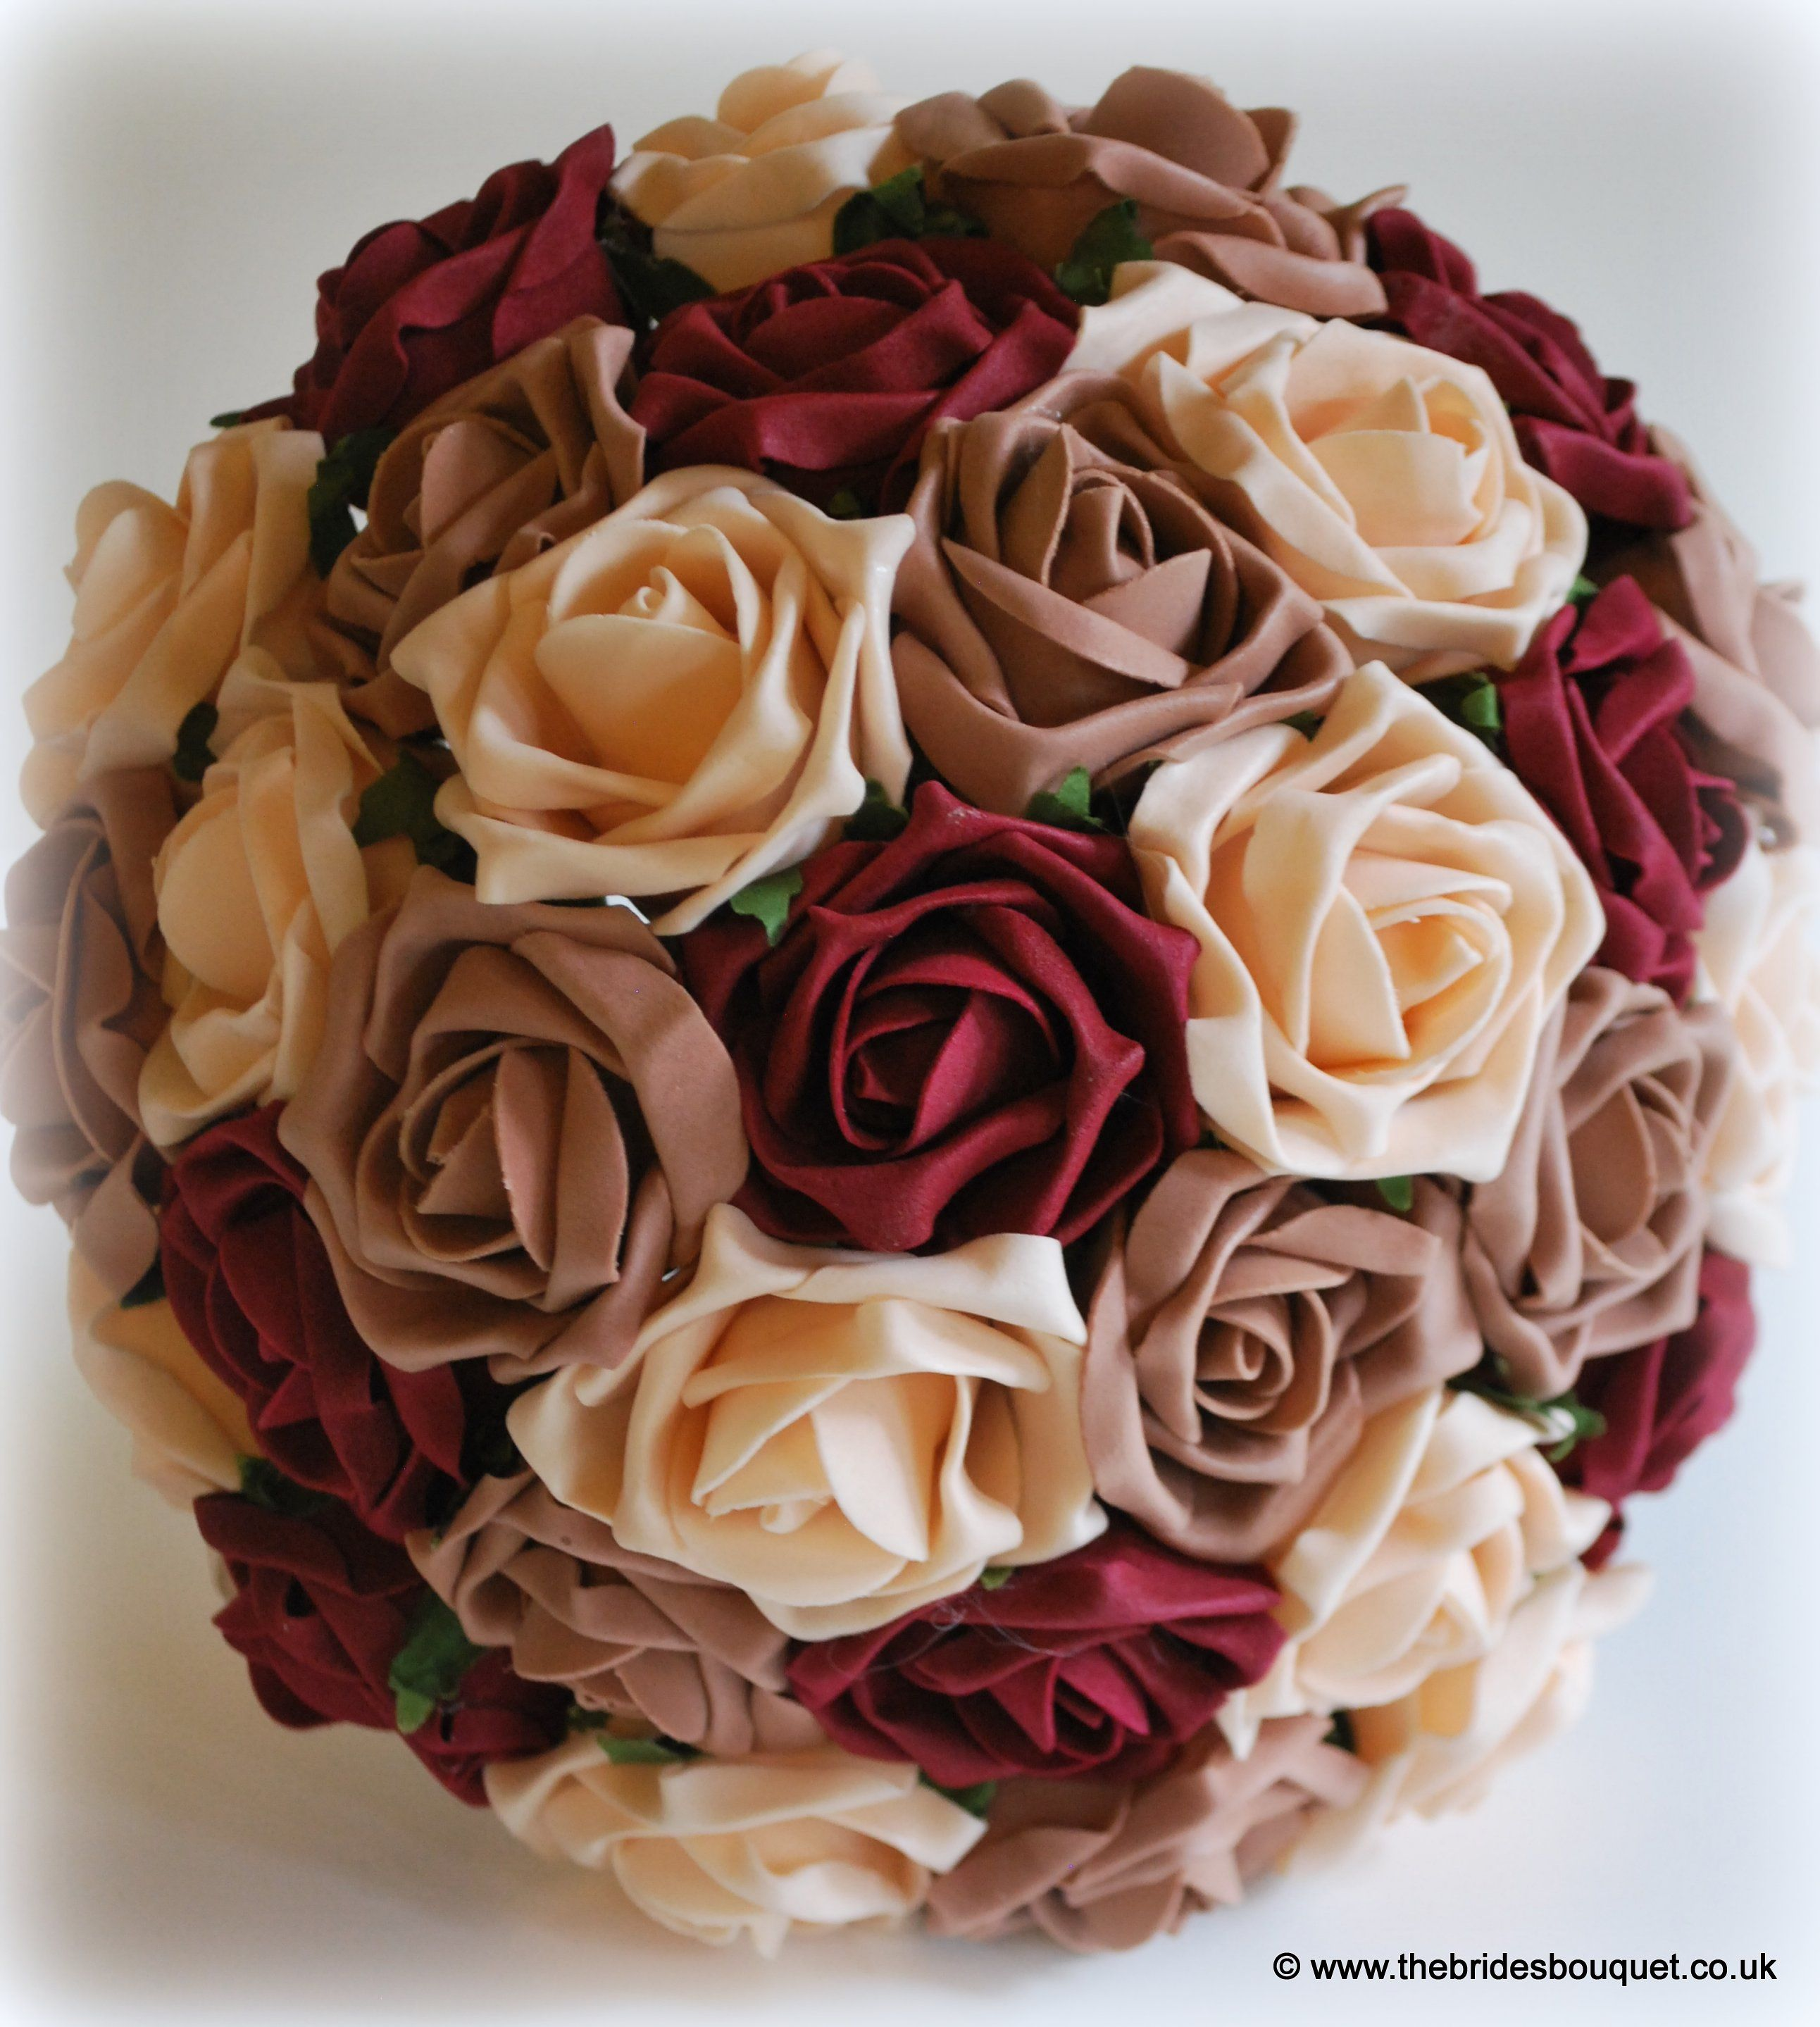 Autumnal Toned Brides Bouquet Of Roses